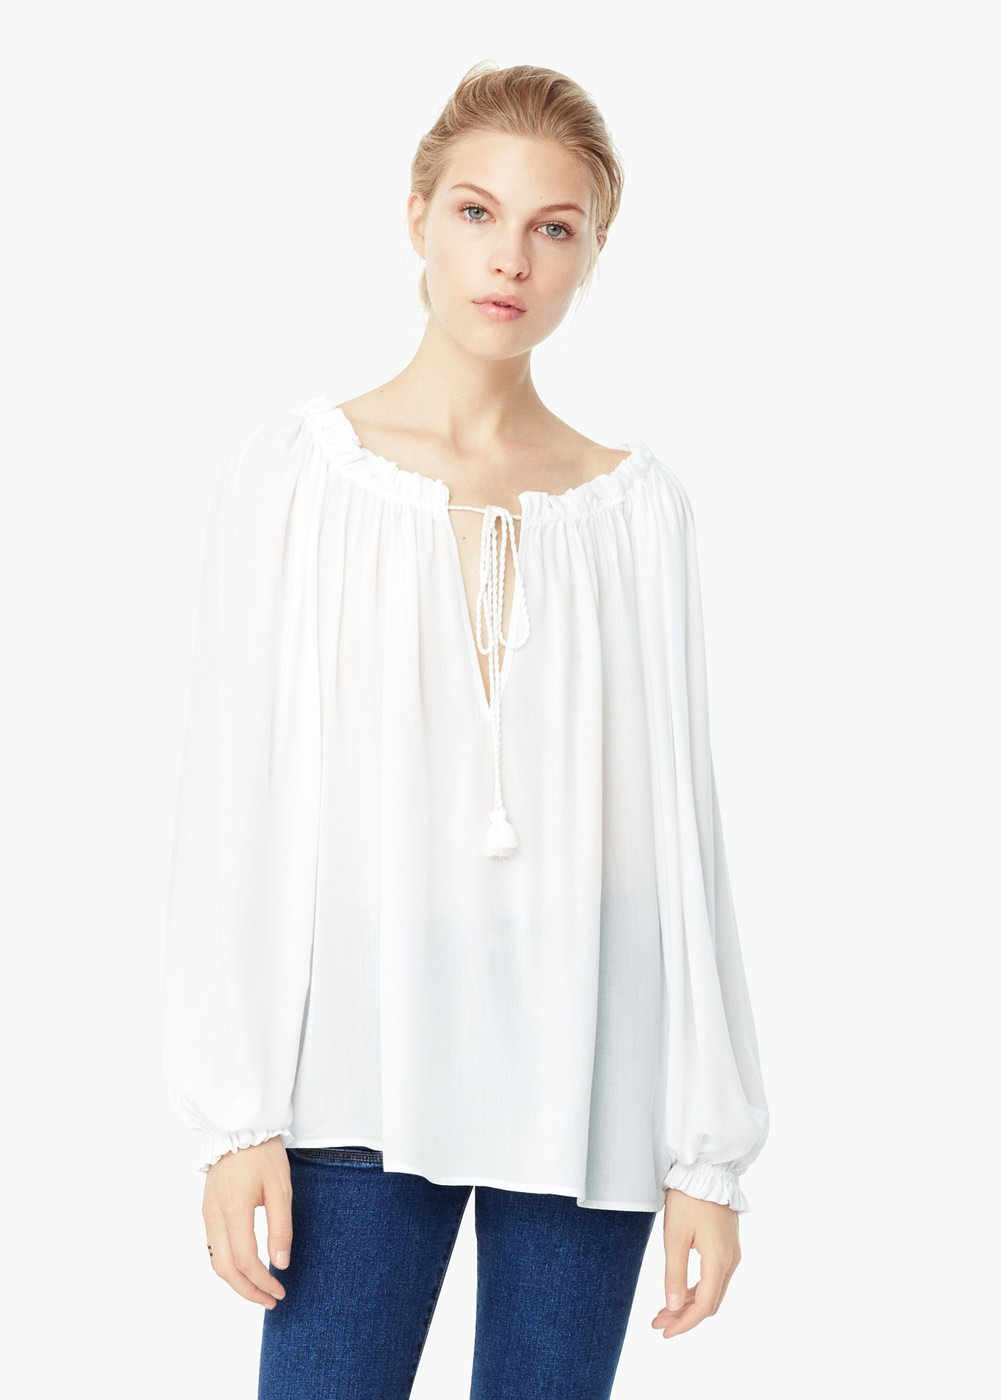 Braided Cord Blouse €29.95 REF. 53073020